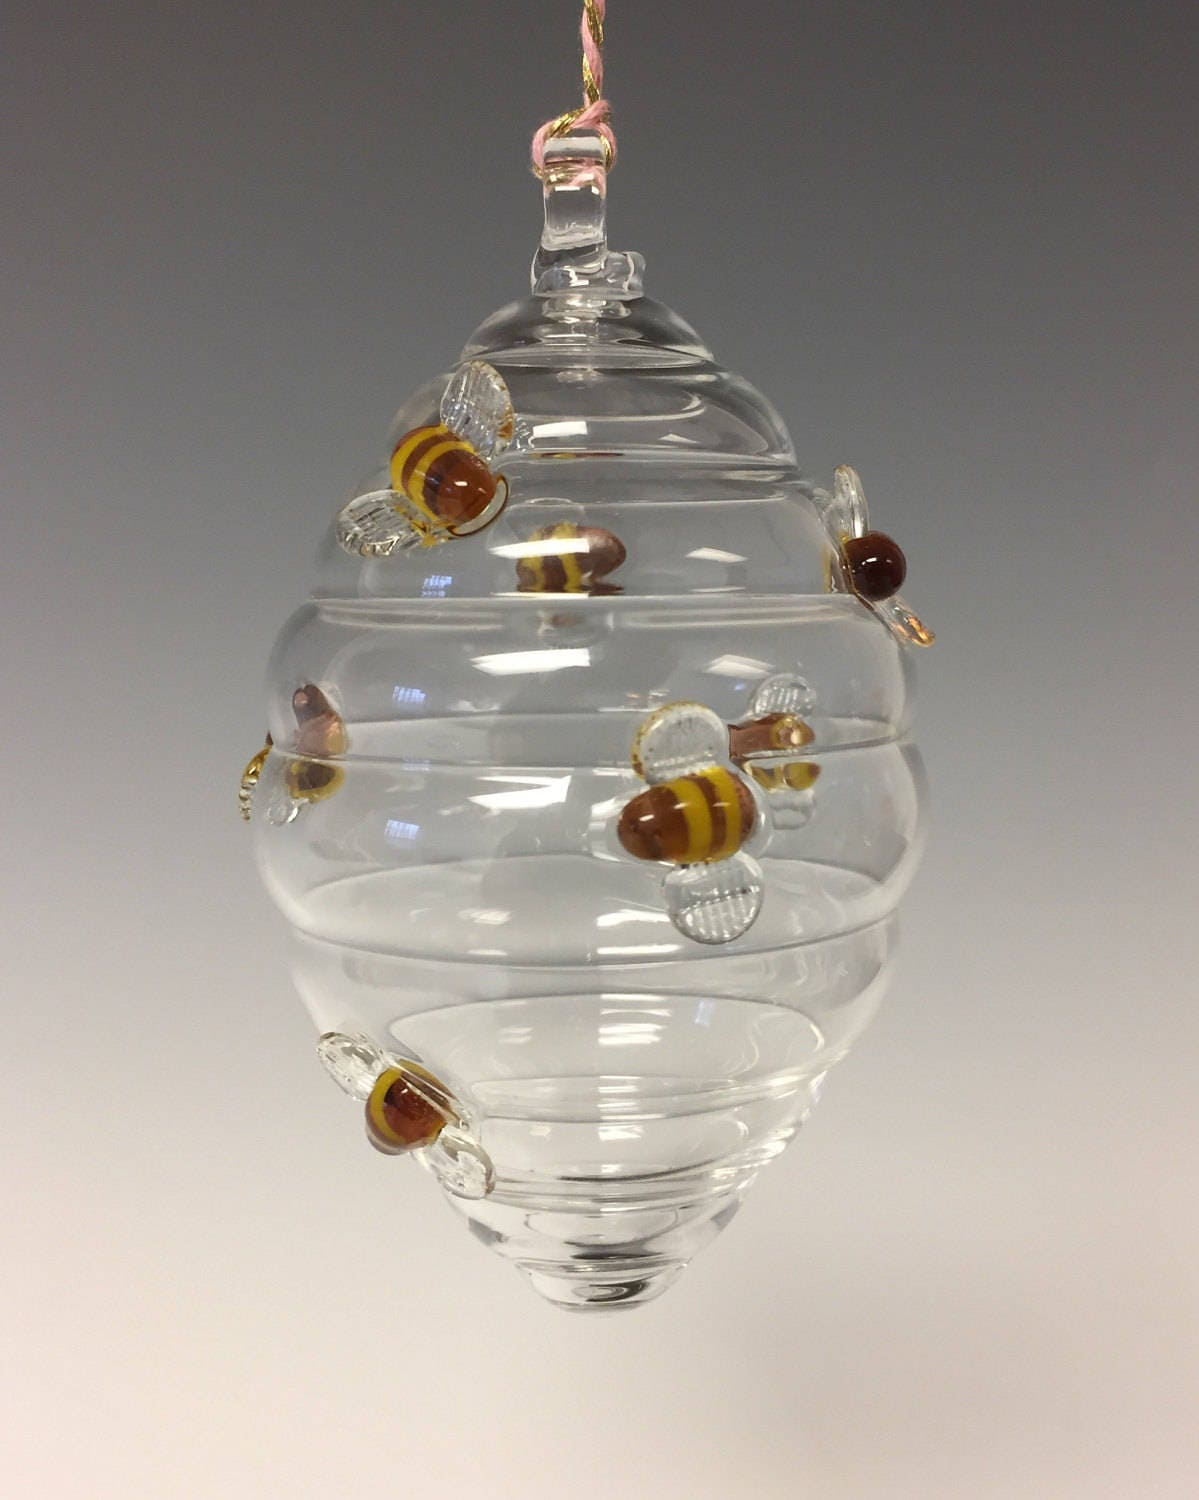 Beehive ornament - Beehive Ornament